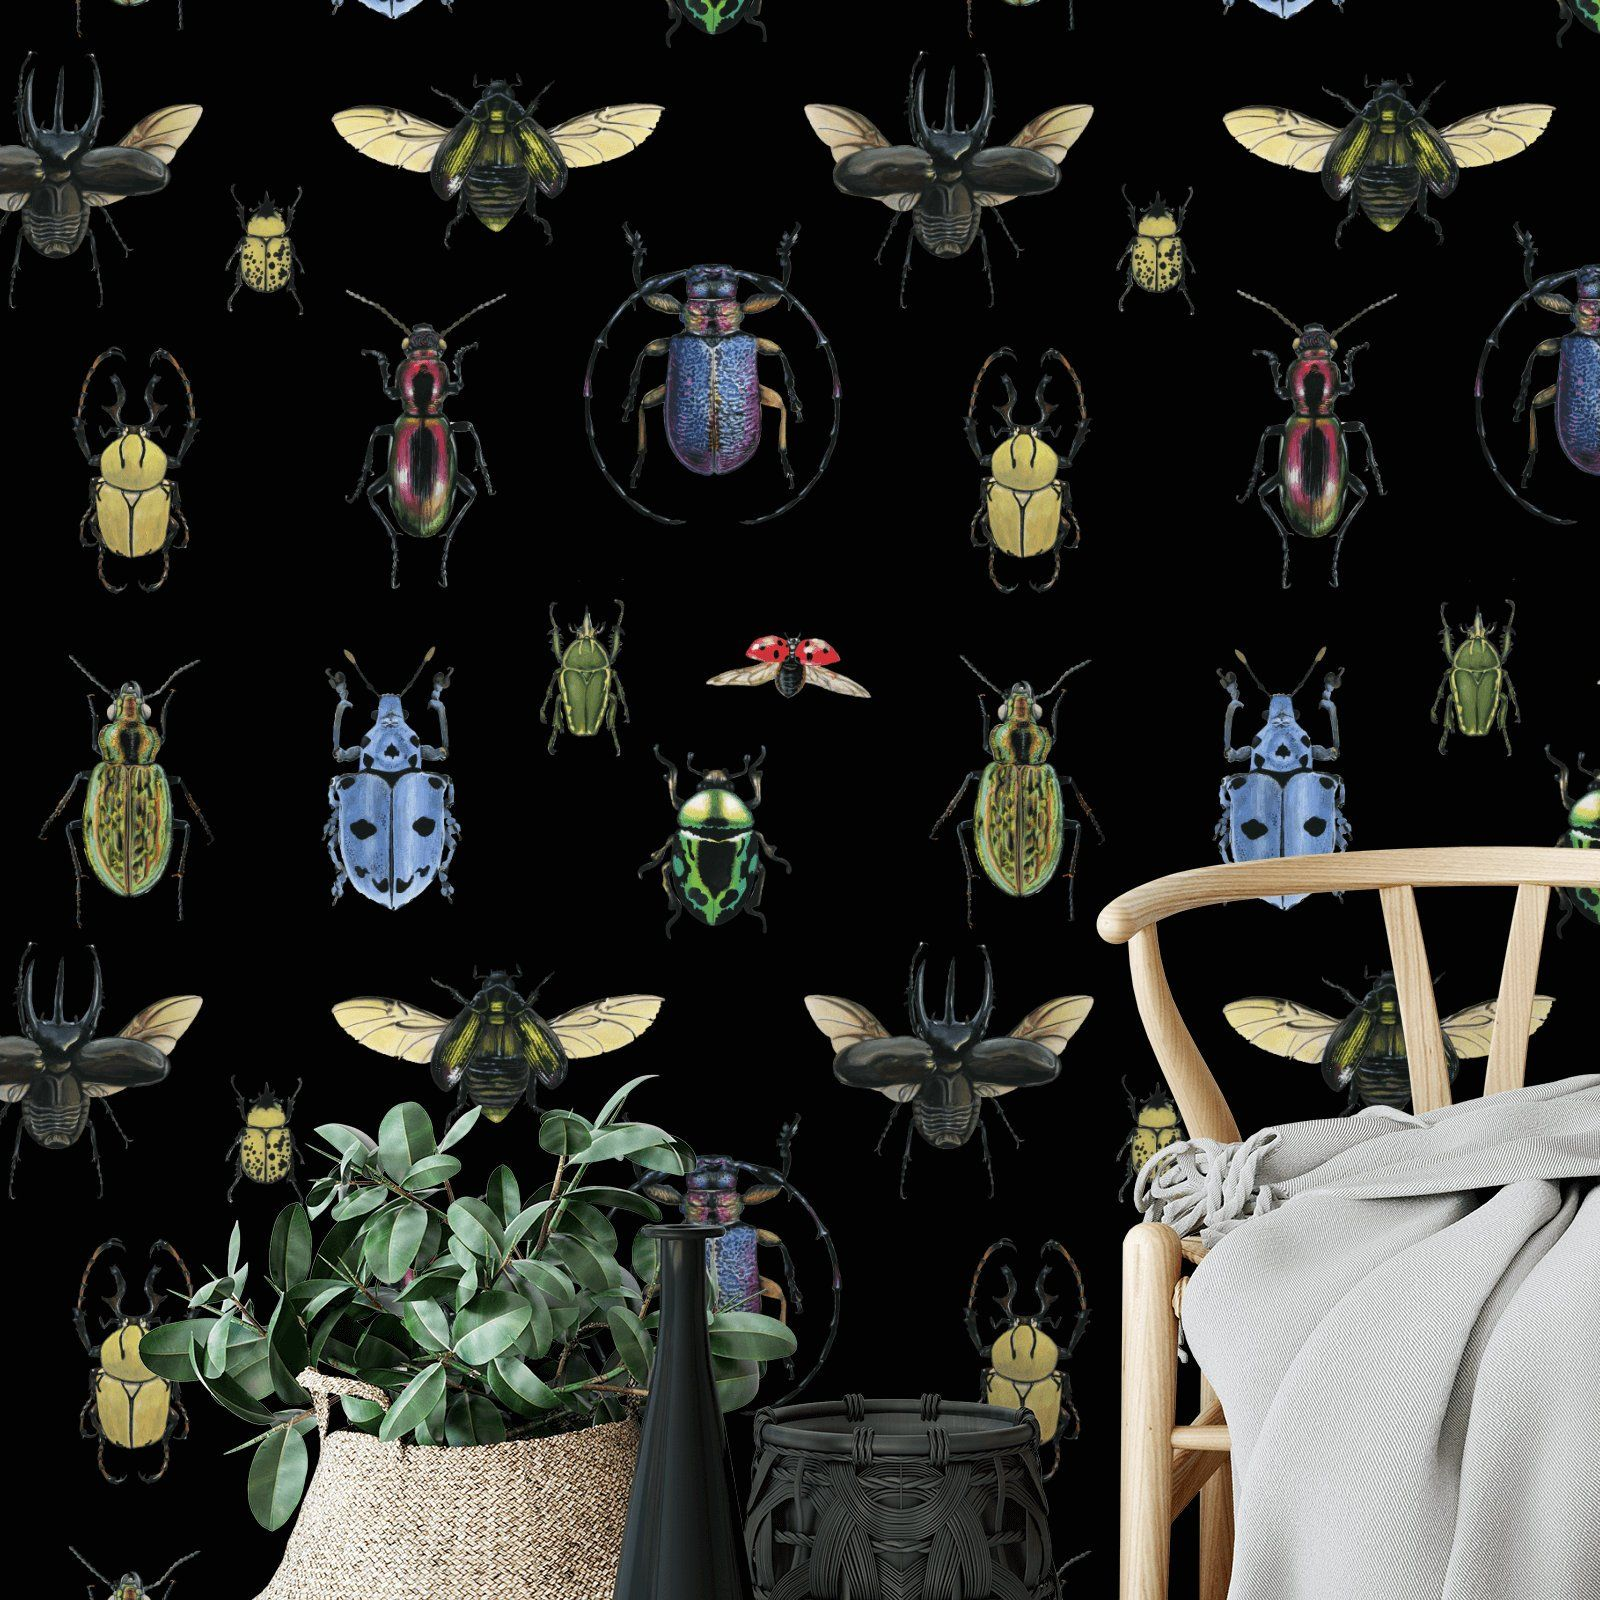 Insect Removable Wallpaper On Black 636 Etsy Removable Wallpaper Temporary Wallpaper Nature Wallpaper